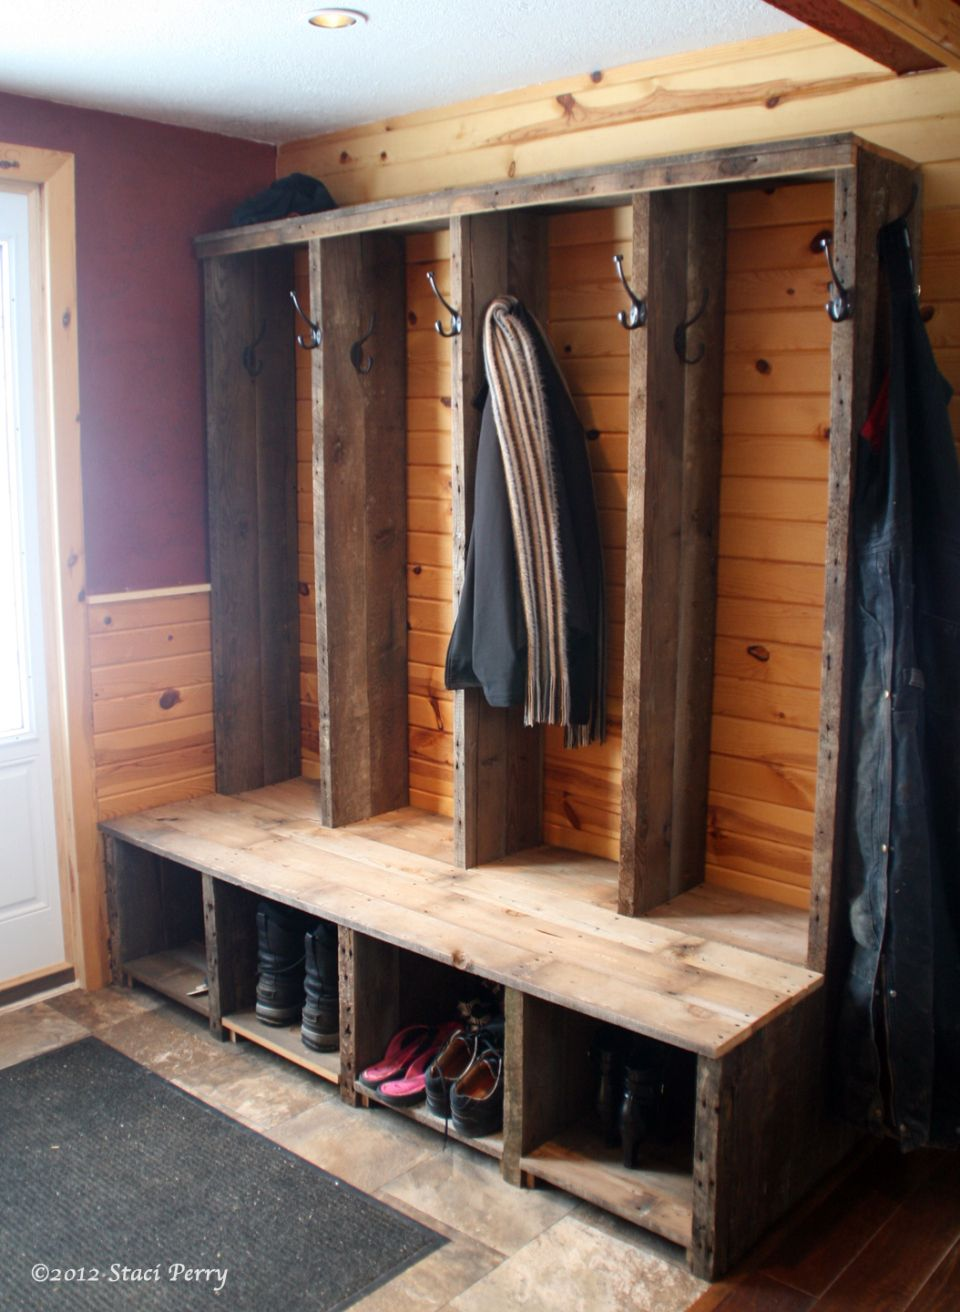 Mudroom Storage Woodworking Plans : Plans for sales woodworking entry bench wooden diy